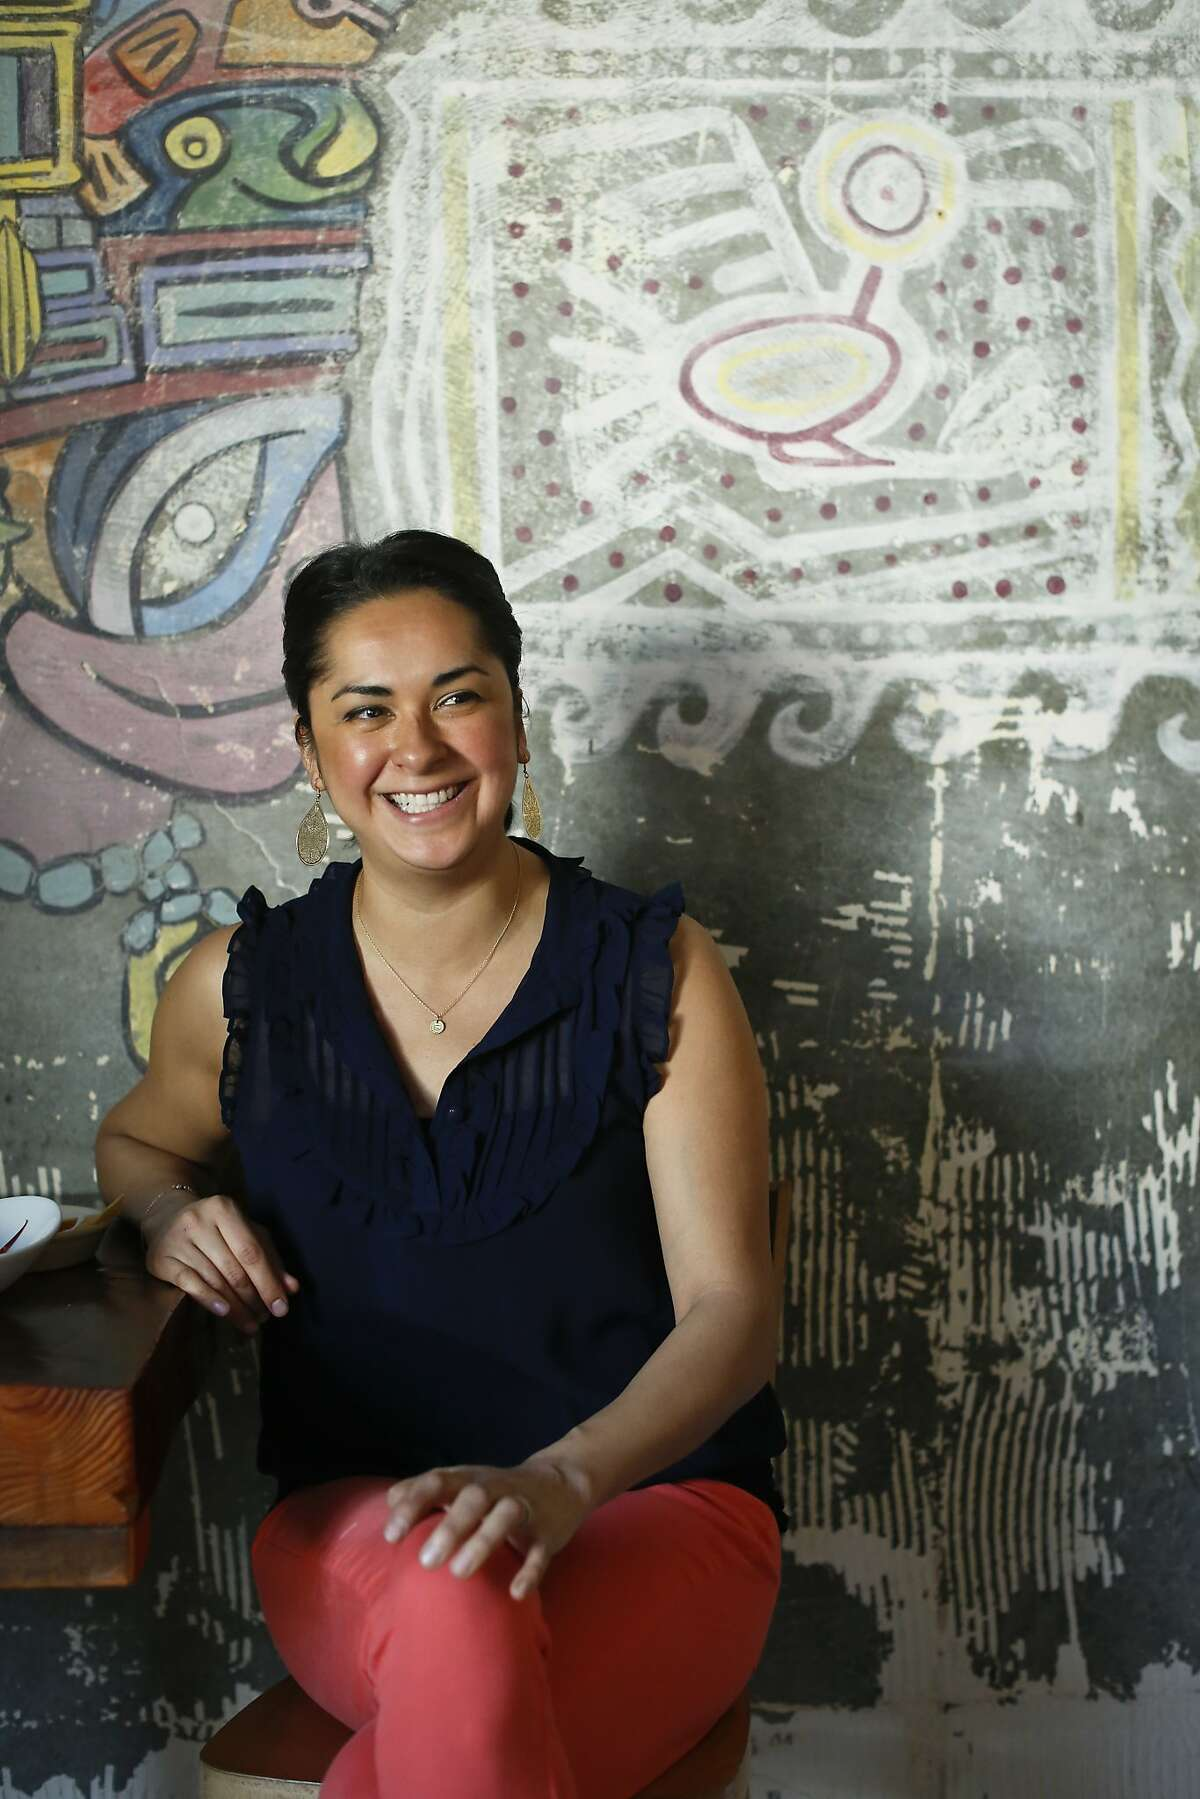 Silvia McCollow, chef/owner of Nido in Oakland, recalls growing up in Mexico and family eating adventures on road trips.